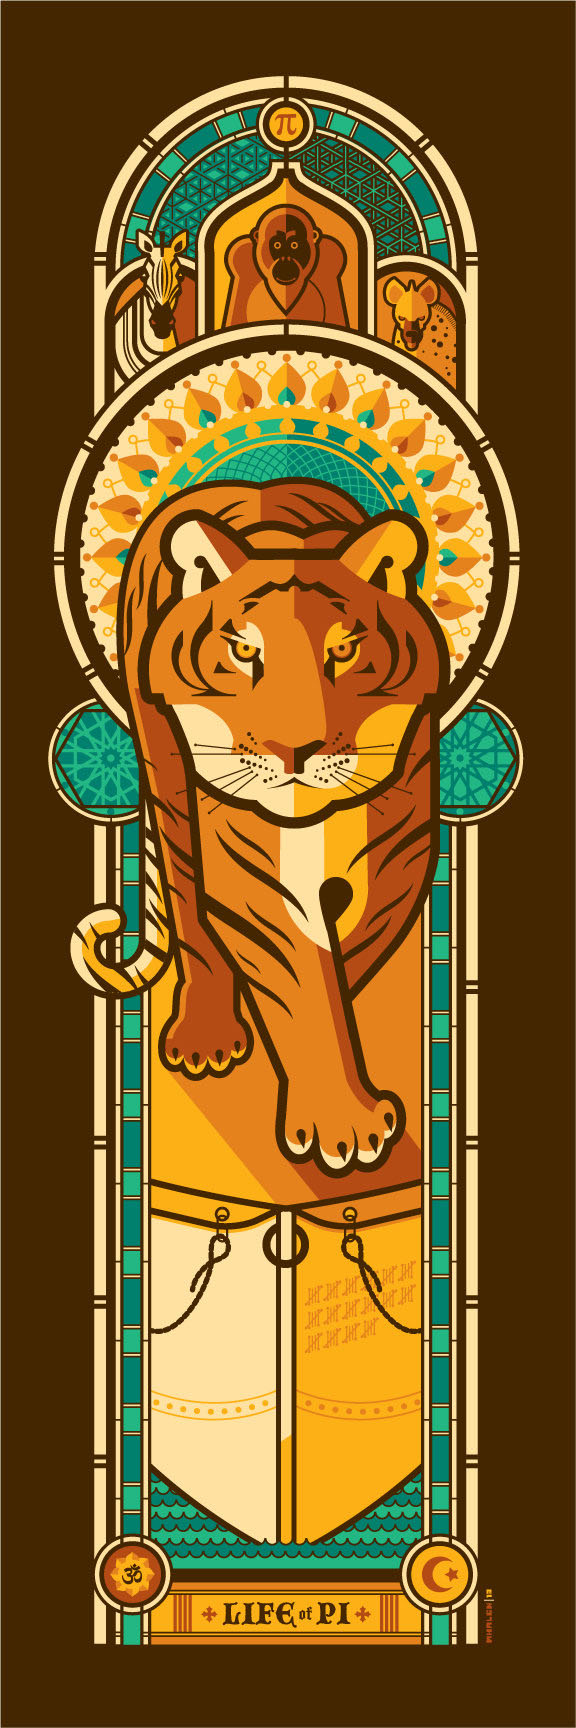 2013 oscars posters life of pi